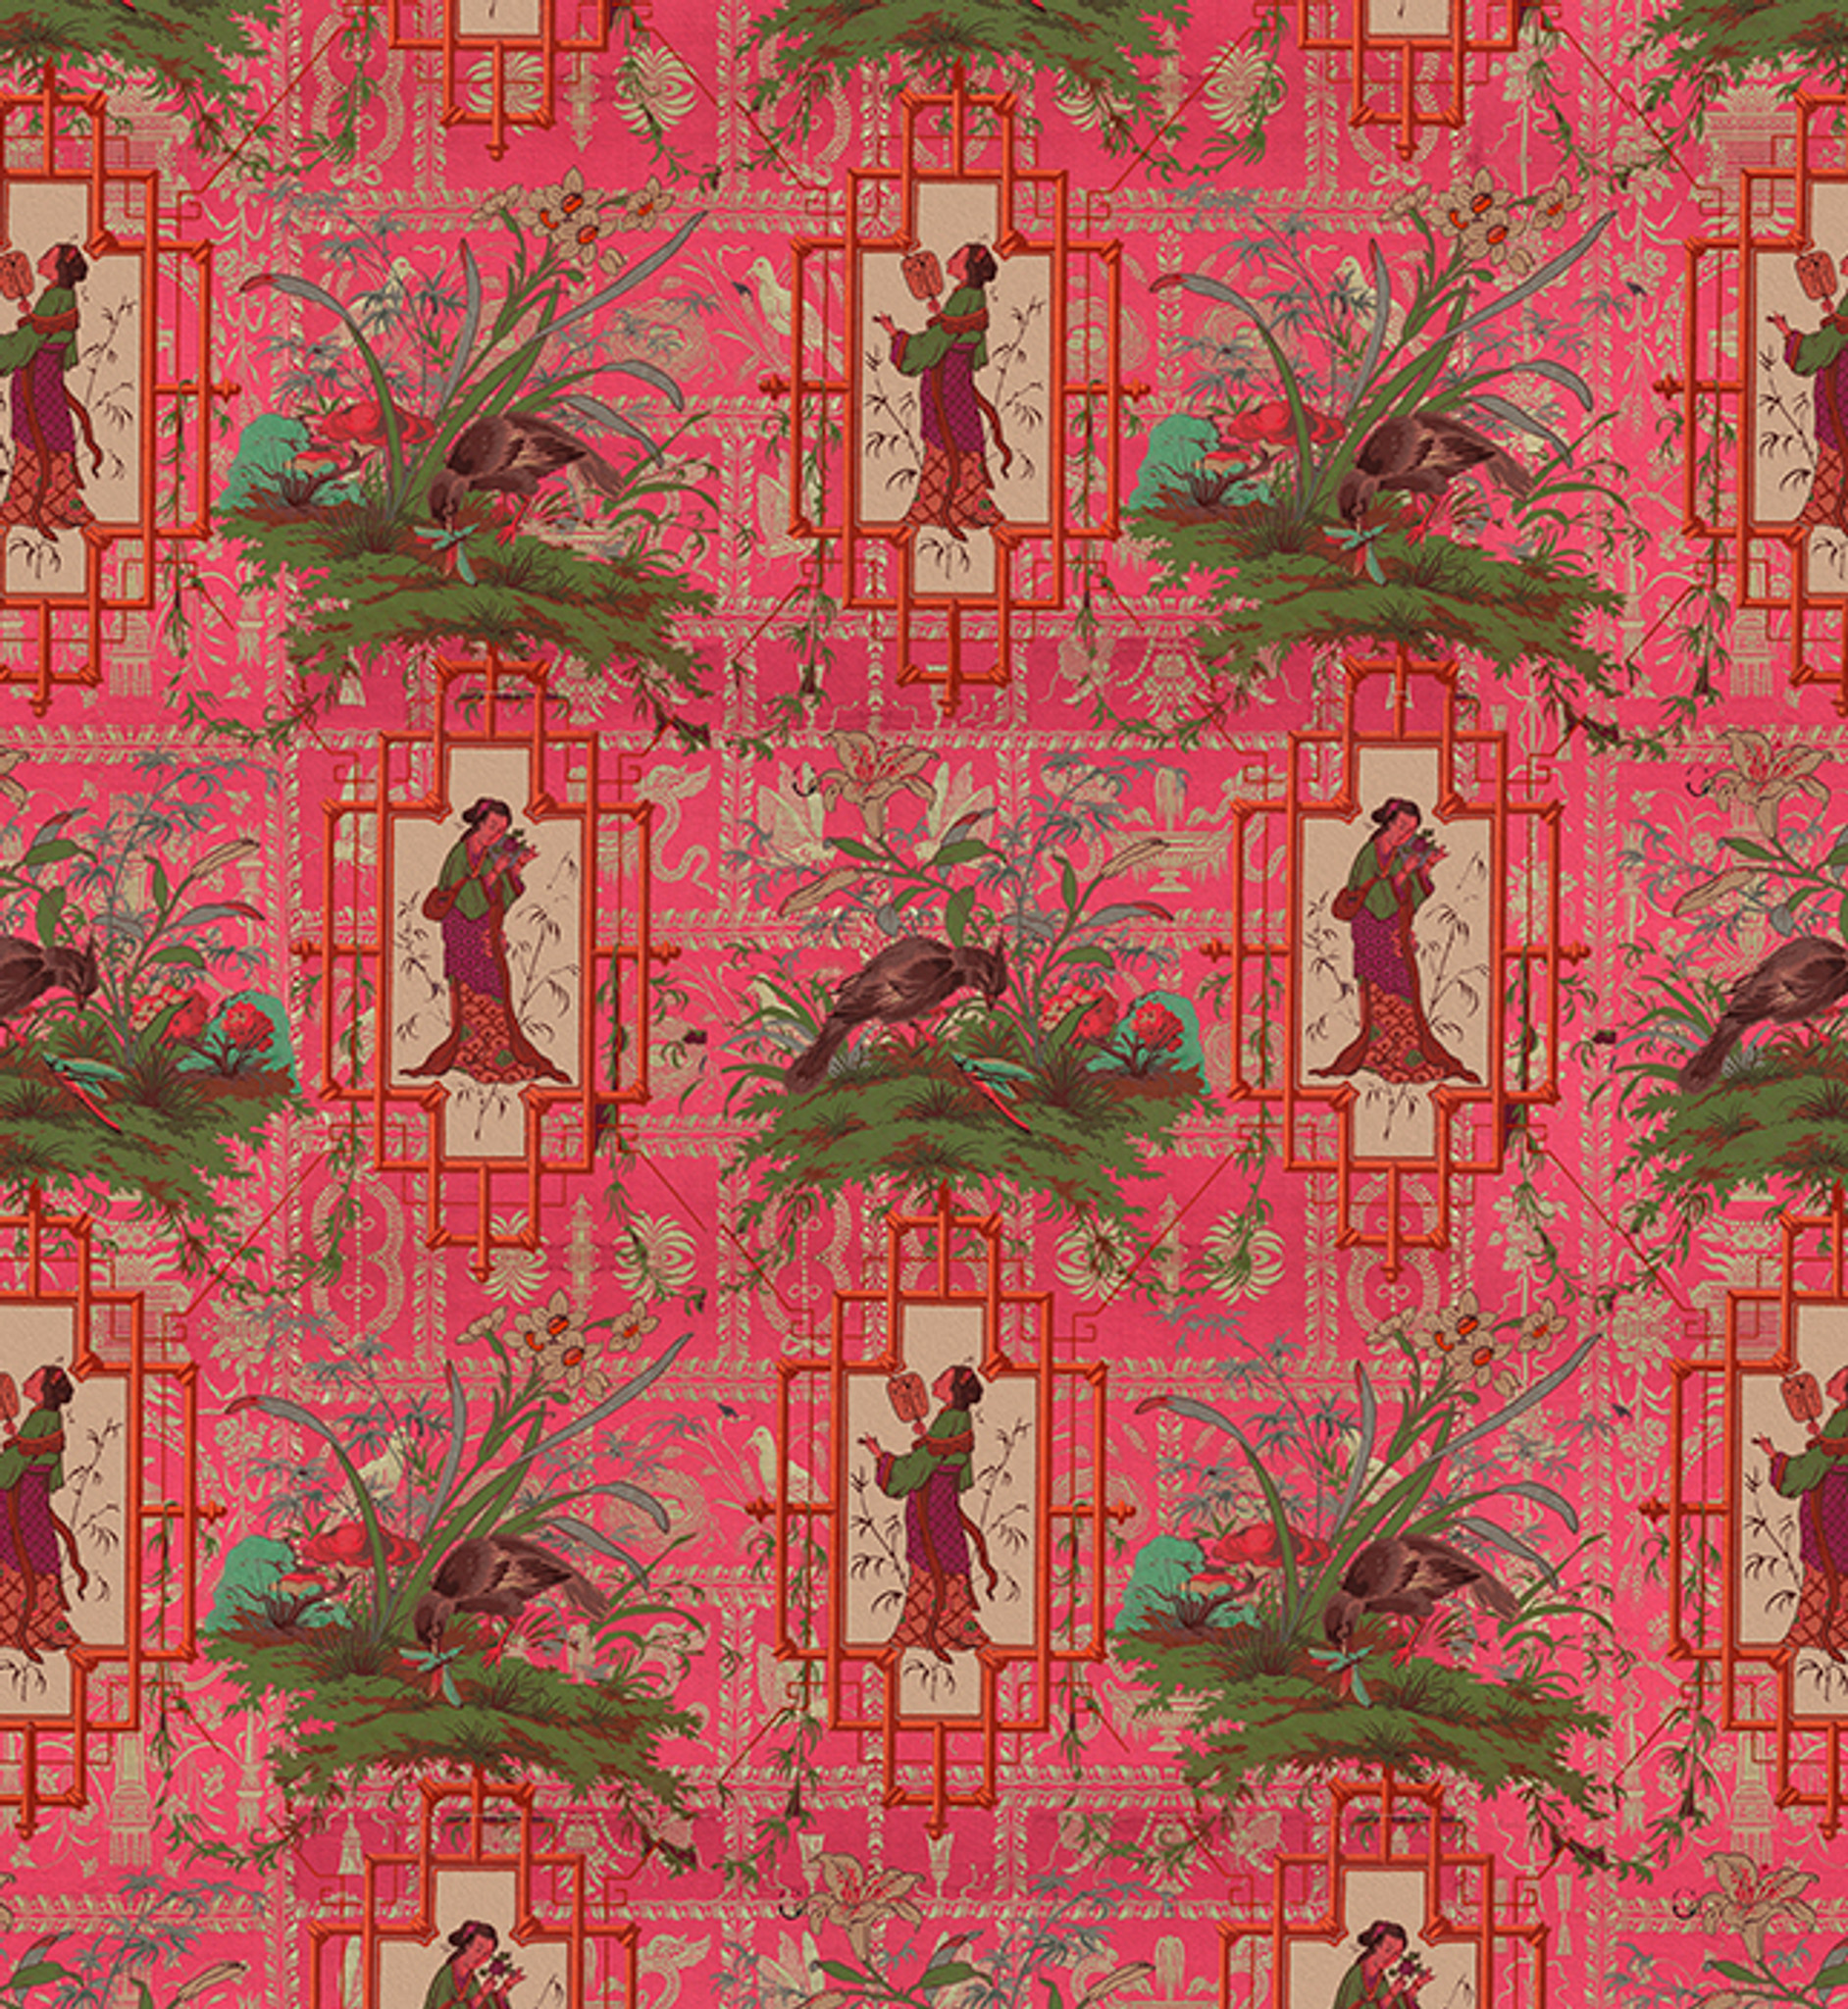 Fabric - Chinoiserie - Eldest Princess - Hot Pink